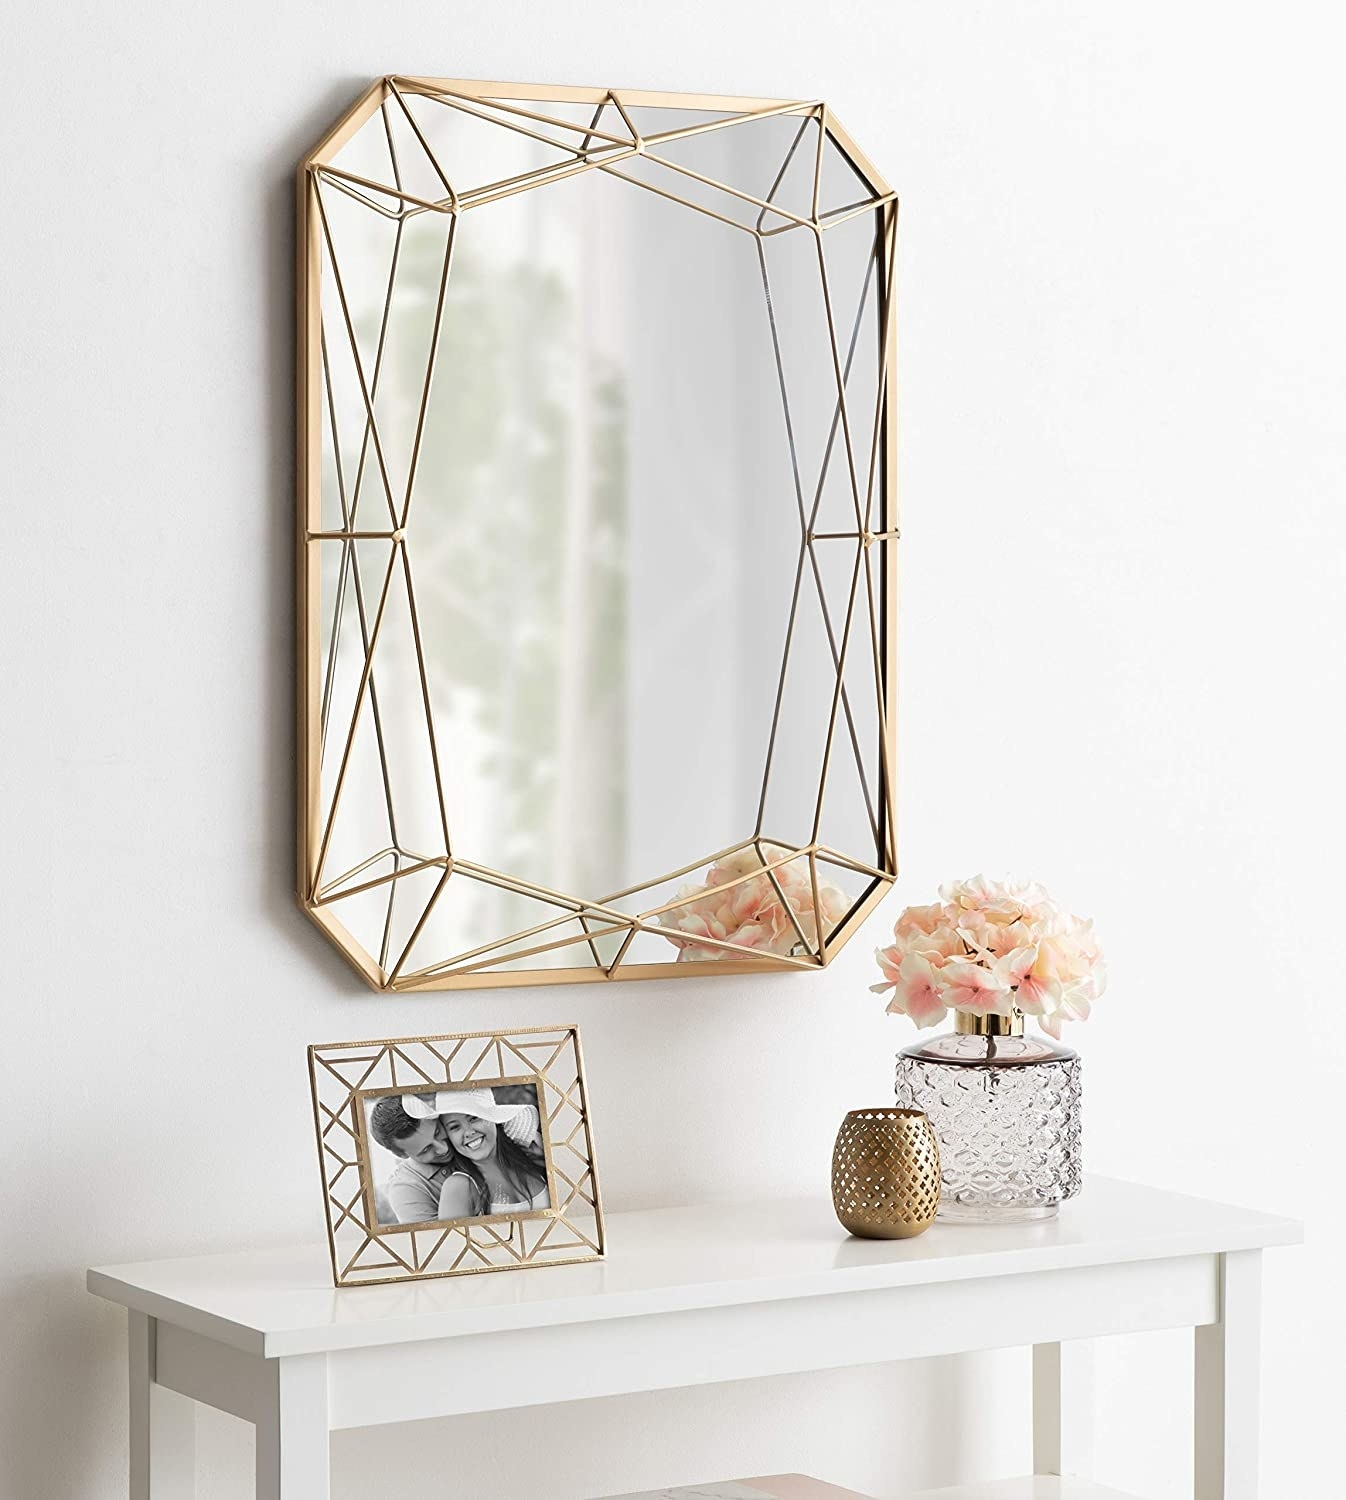 Large mirror with gold wire in geometric pattern on sides